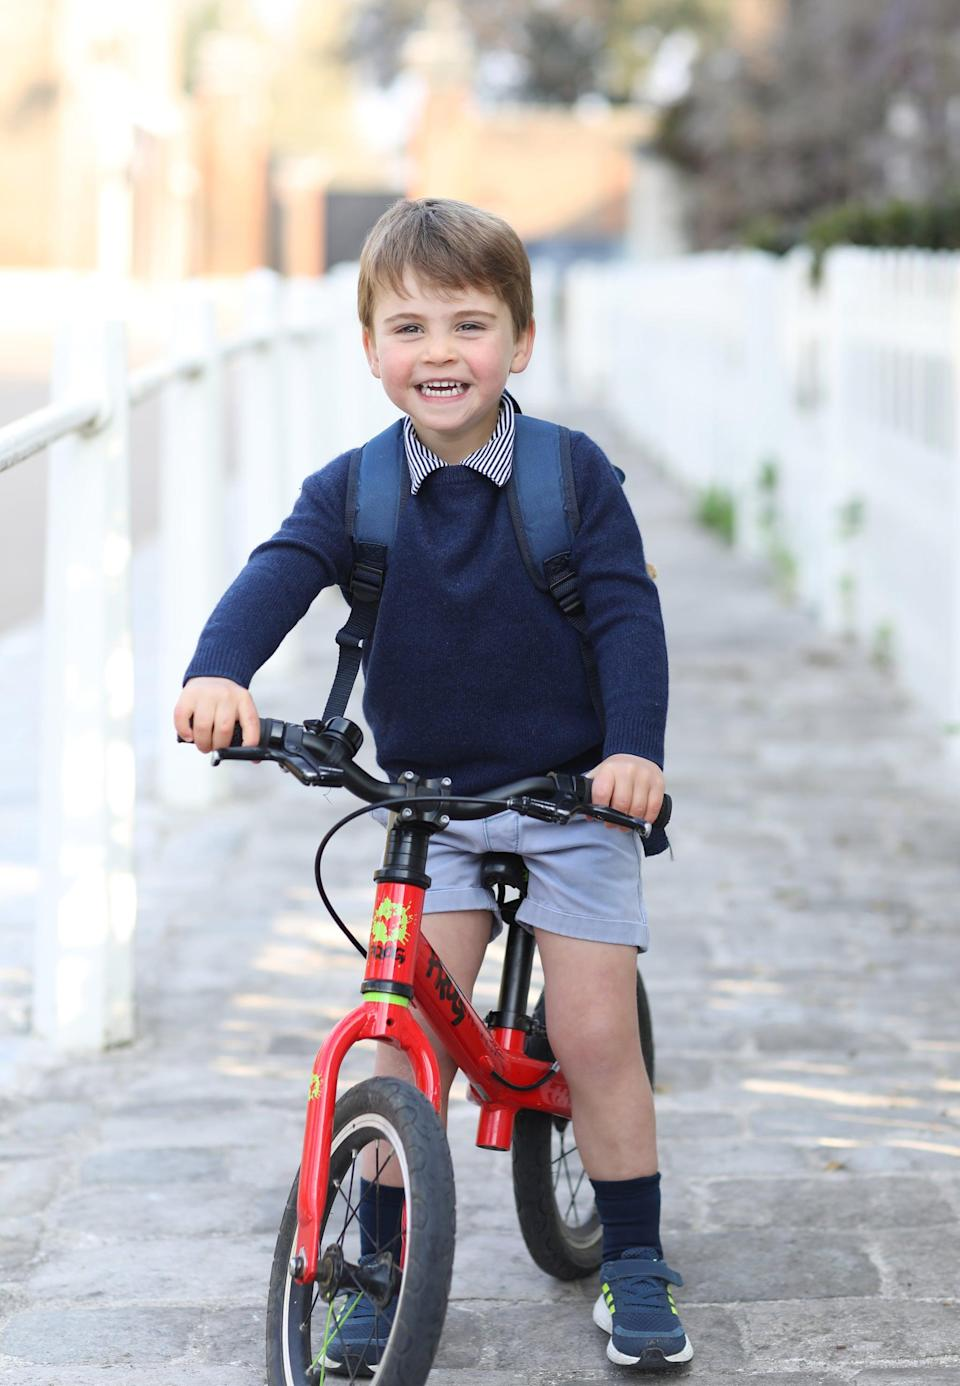 LONDON, UNITED KINGDOM - APRIL 21: ***This photograph must not be used after 31st December 2021 without prior permission from Kensington Palace. MANDATORY CREDIT: The Duchess of Cambridge.*** In this handout photo issued on April 22, 2021 by Kensington Palace and taken by Catherine, Duchess of Cambridge, Prince Louis rides his bicycle at home, prior to leaving for his first day of nursery at the Willcocks Nursery School, at Kensington Palace on April 21, 2021 in London, England. NEWS EDITORIAL USE ONLY. NO COMMERCIAL USE. NO MERCHANDISING, ADVERTISING, SOUVENIRS, MEMORABILIA or COLOURABLY SIMILAR. This photograph is provided to you strictly on condition that you will make no charge for the supply, release or publication of it and that these conditions and restrictions will apply (and that you will pass these on) to any organisation to whom you supply it. There shall be no commercial use whatsoever of the photographs (including by way of example only) any use in merchandising, advertising or any other non-news editorial use. The photographs must not be digitally enhanced, manipulated or modified in any manner or form and must include all of the individuals in the photograph when published. All other requests for use should be directed to the Press Office at Kensington Palace in writing. NOTE TO EDITORS: This handout photo may only be used in for editorial reporting purposes for the contemporaneous illustration of events, things or the people in the image or facts mentioned in the caption. Reuse of the picture may require further permission from the copyright holder. (Photo by The Duchess of Cambridge/Kensington Palace via Getty Images)